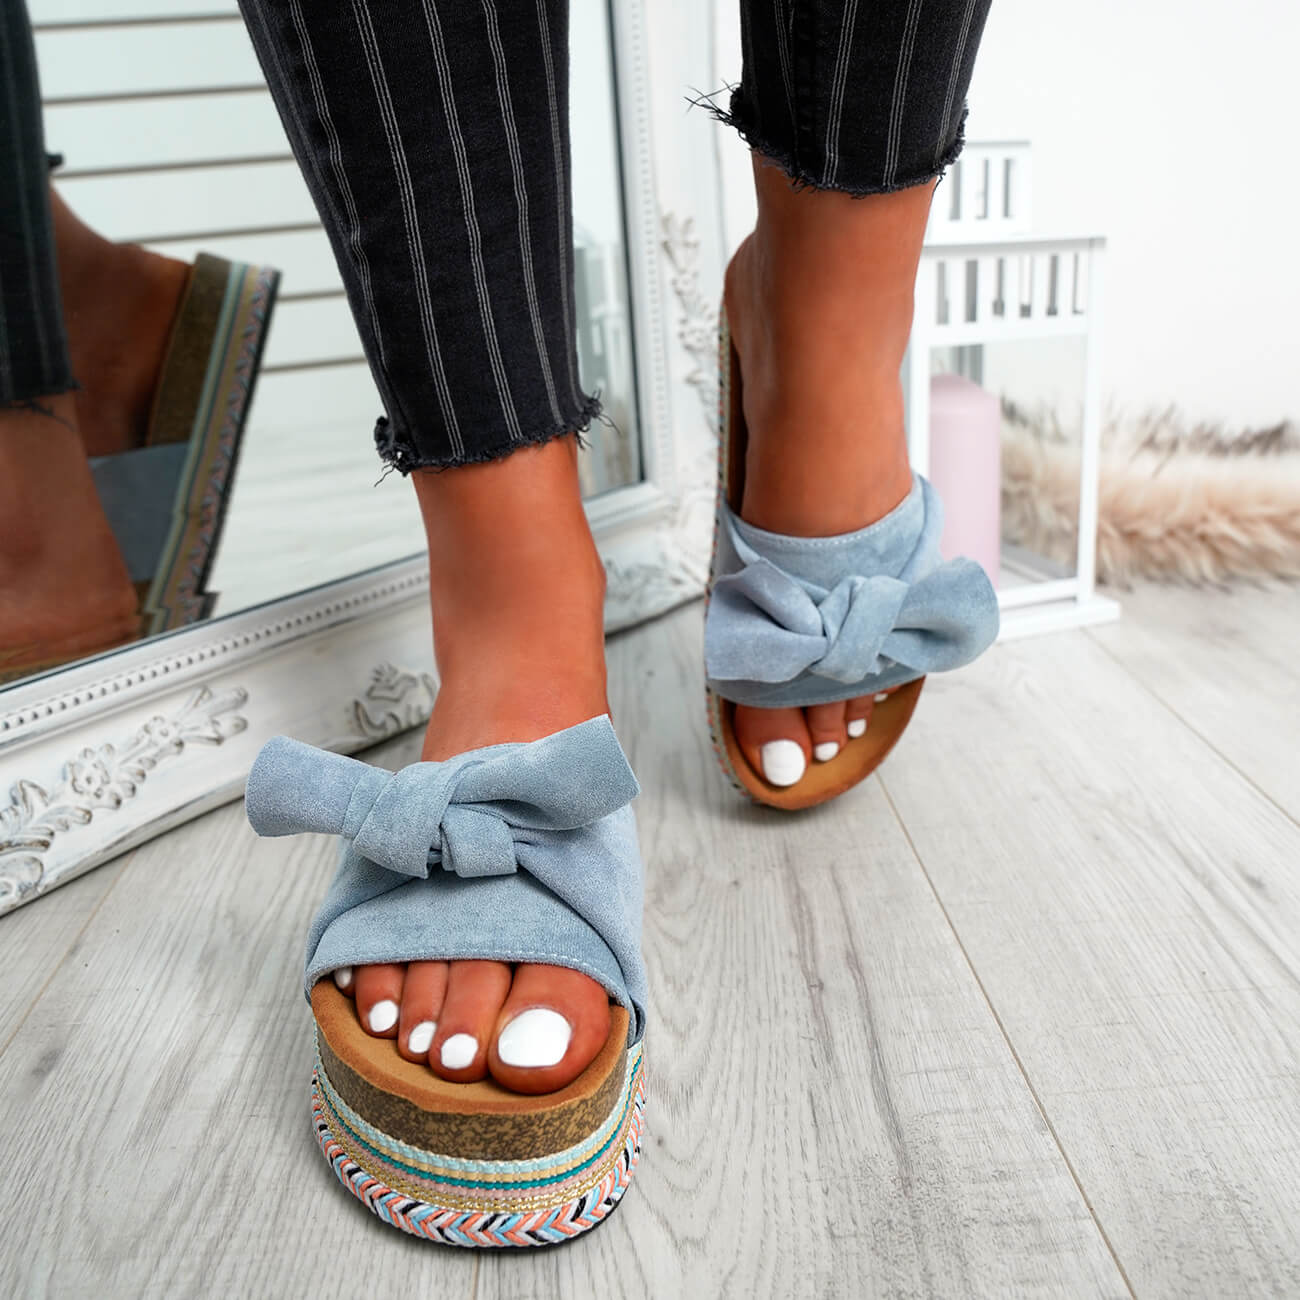 WOMENS-LADIES-BOW-SLIDERS-SLIP-ON-FLATFORMS-SUMMER-PARTY-SANDALS-SHOES-SIZE thumbnail 12